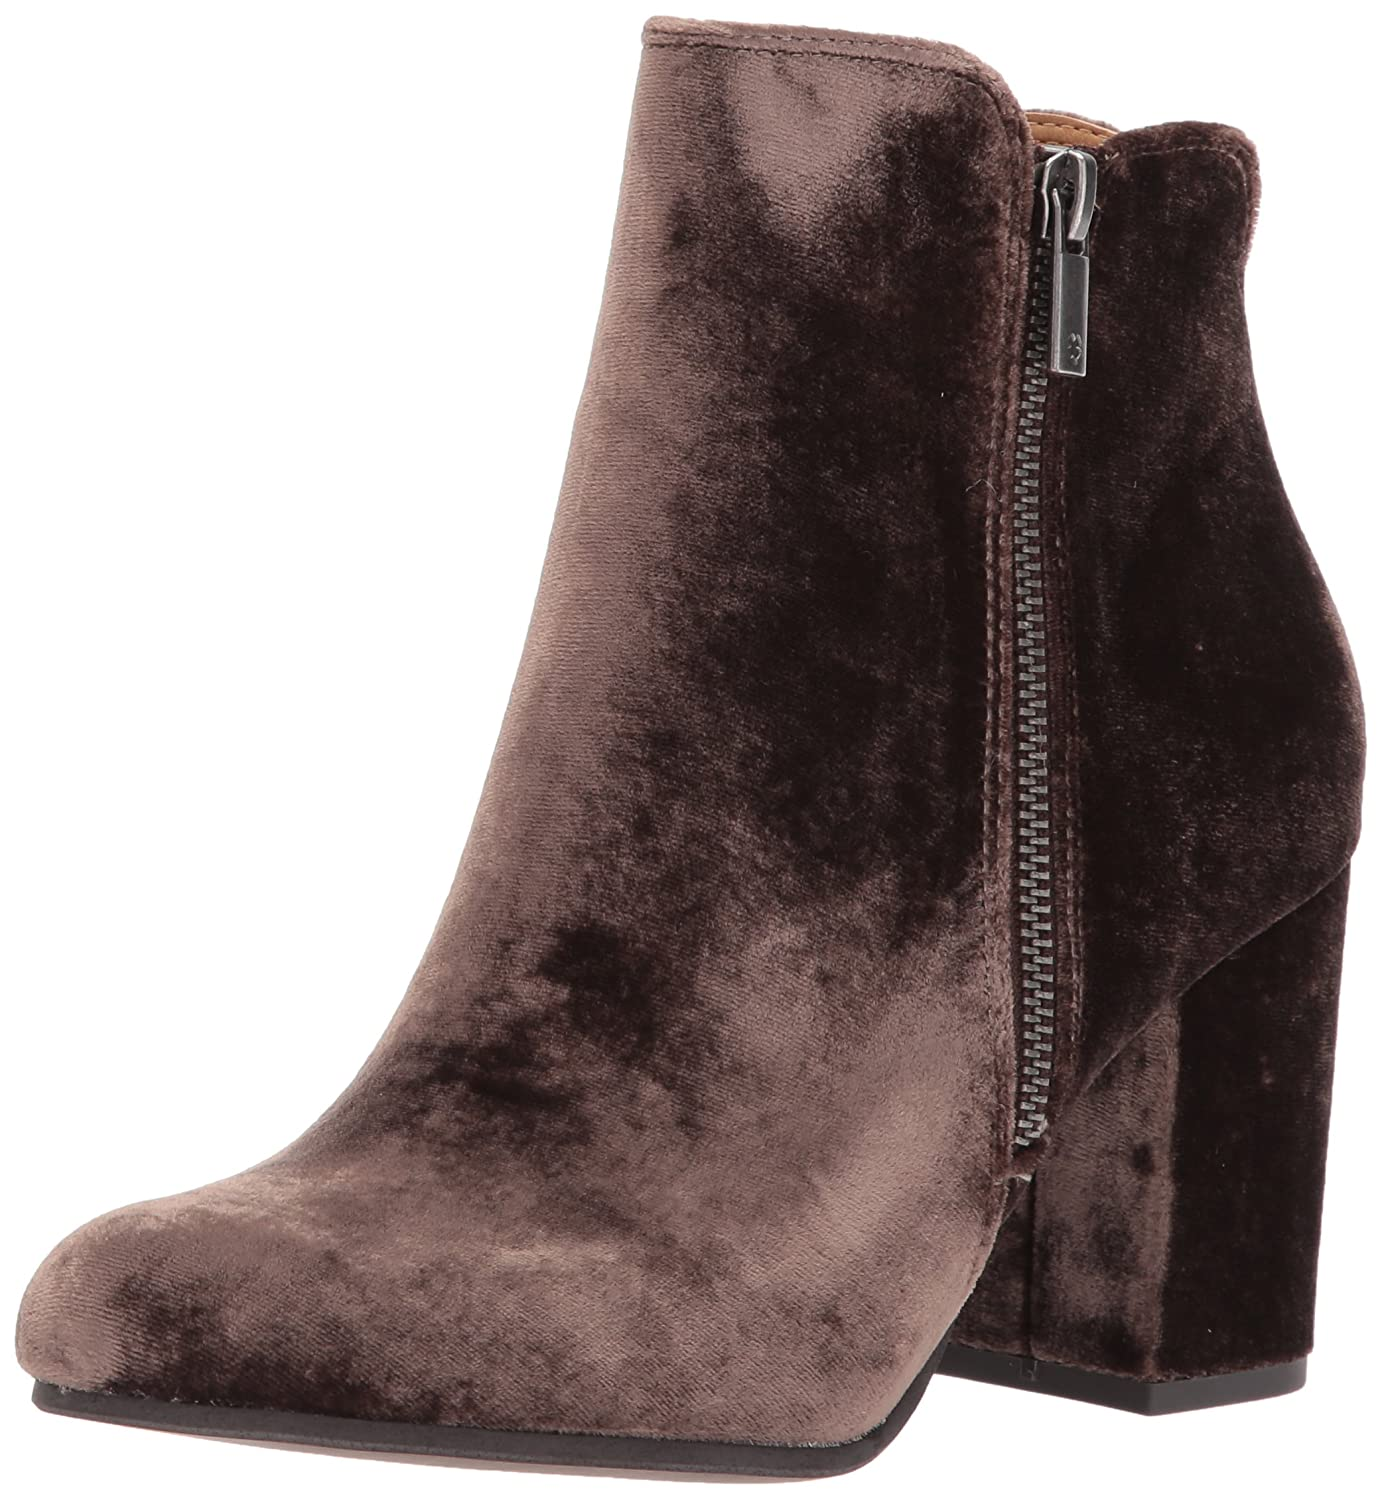 Lucky Brand Women's Shaynah Ankle Boot B01NCO6WAE 7 M US|Chocolate